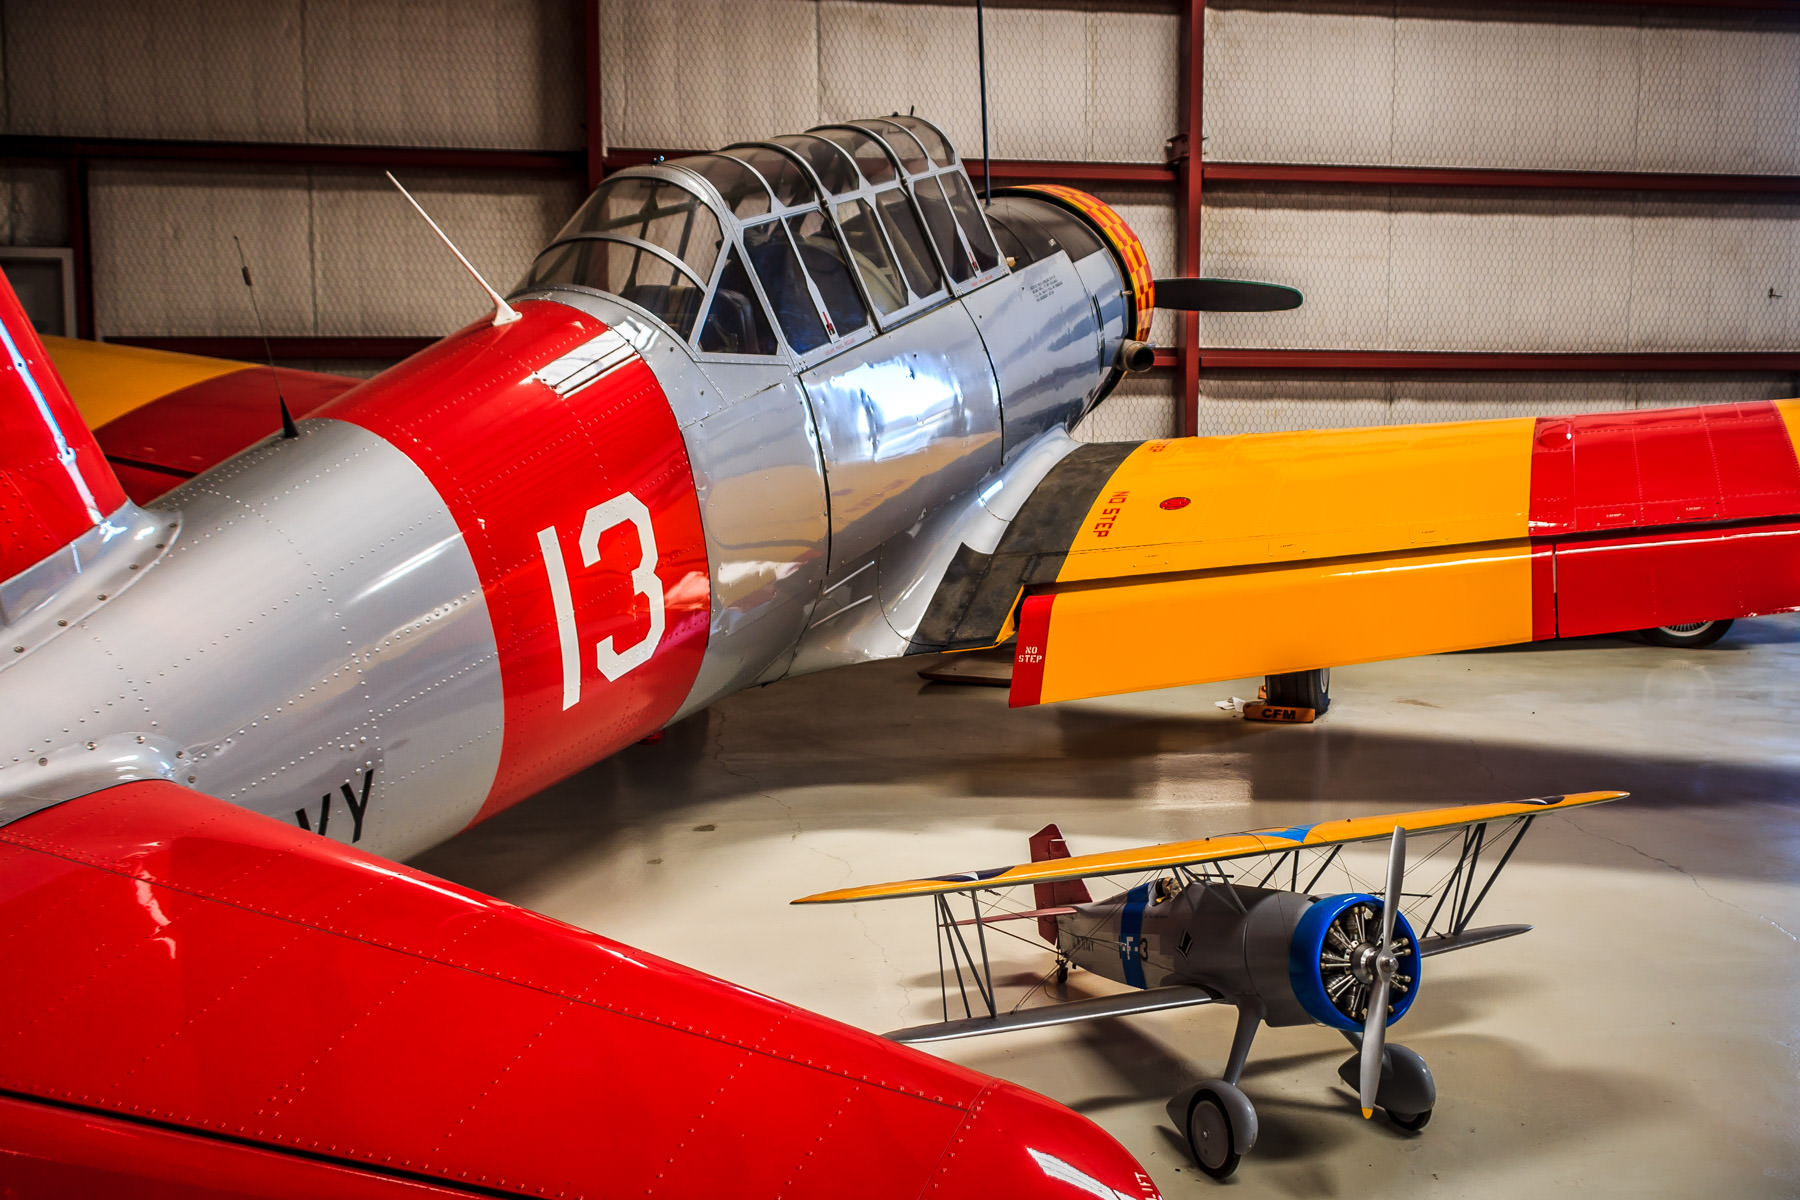 A full size-airplane and a small model of a biplane at the Cavanaugh Flight Museum, Addison, Texas.